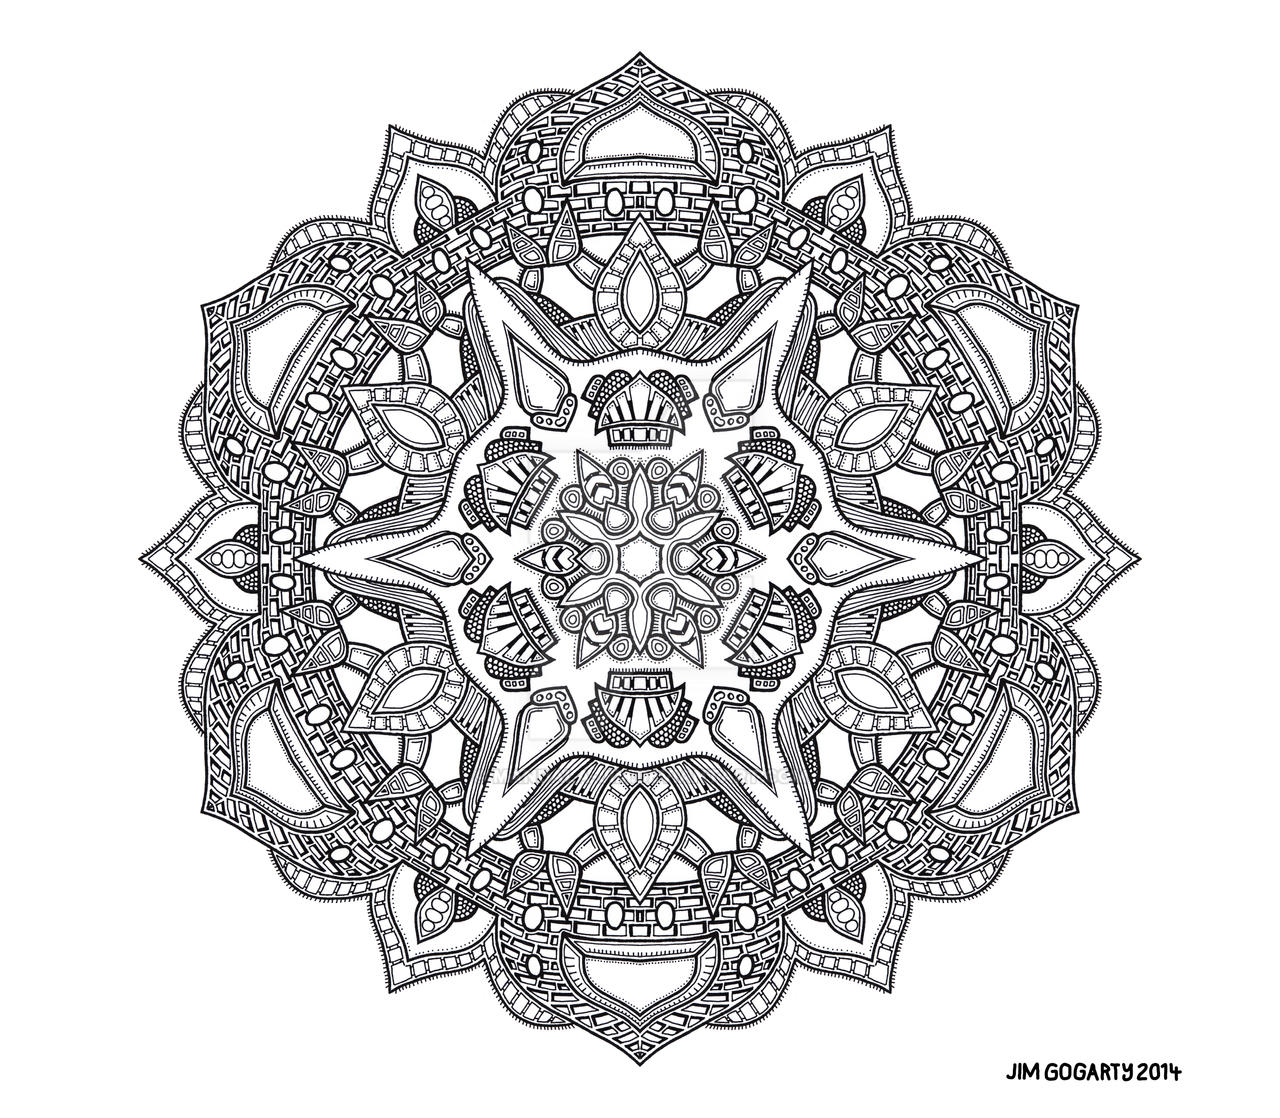 The mandala coloring book jim gogarty - Ornate Beginning By Mandala Jim